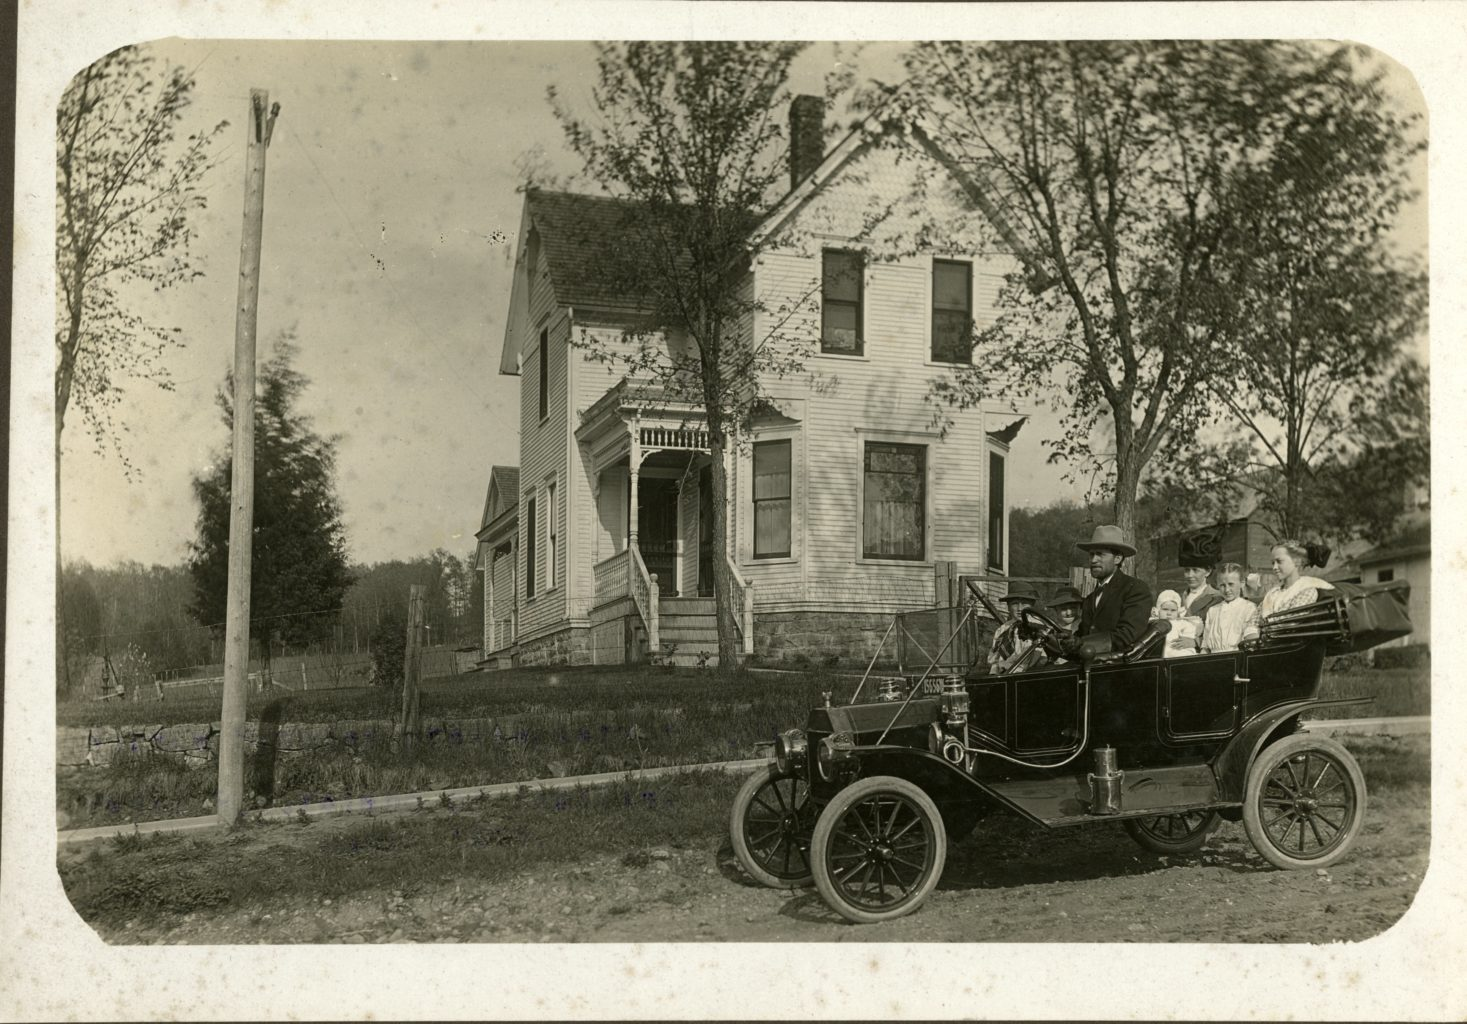 Family in car in front of house.